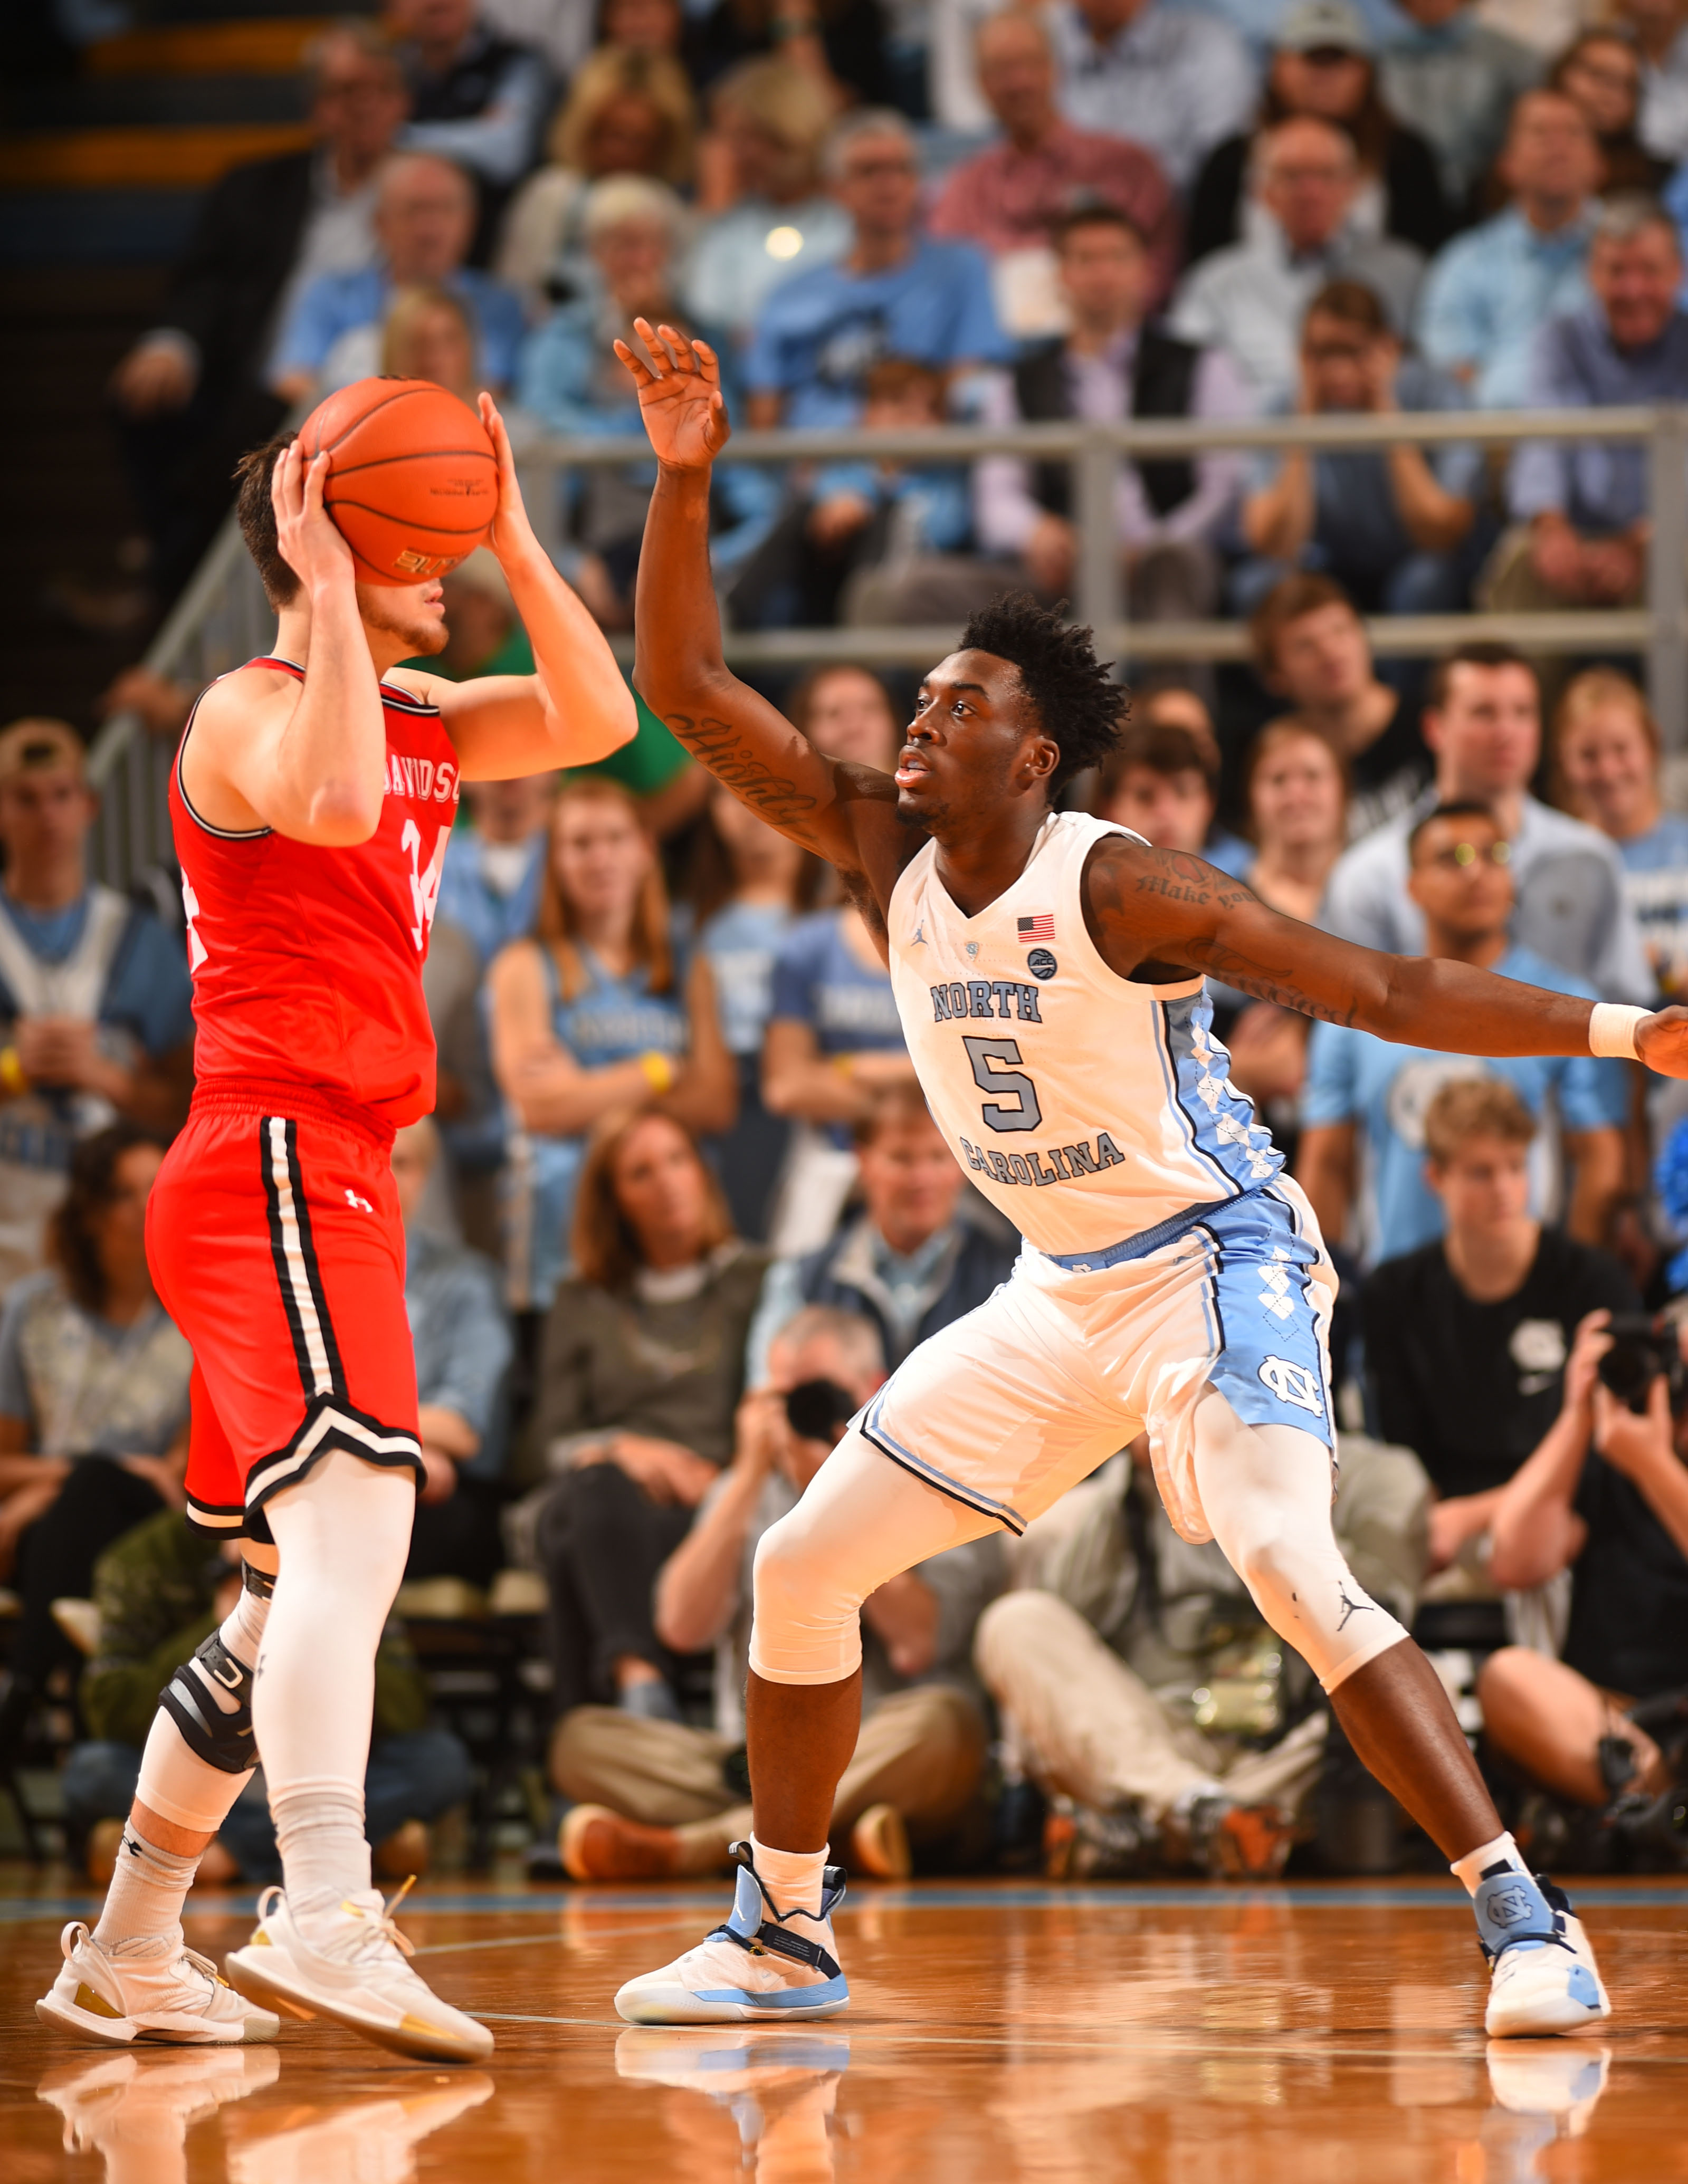 Chad Floyd Profile and Activity - Page 5 - Tar Heel Blog